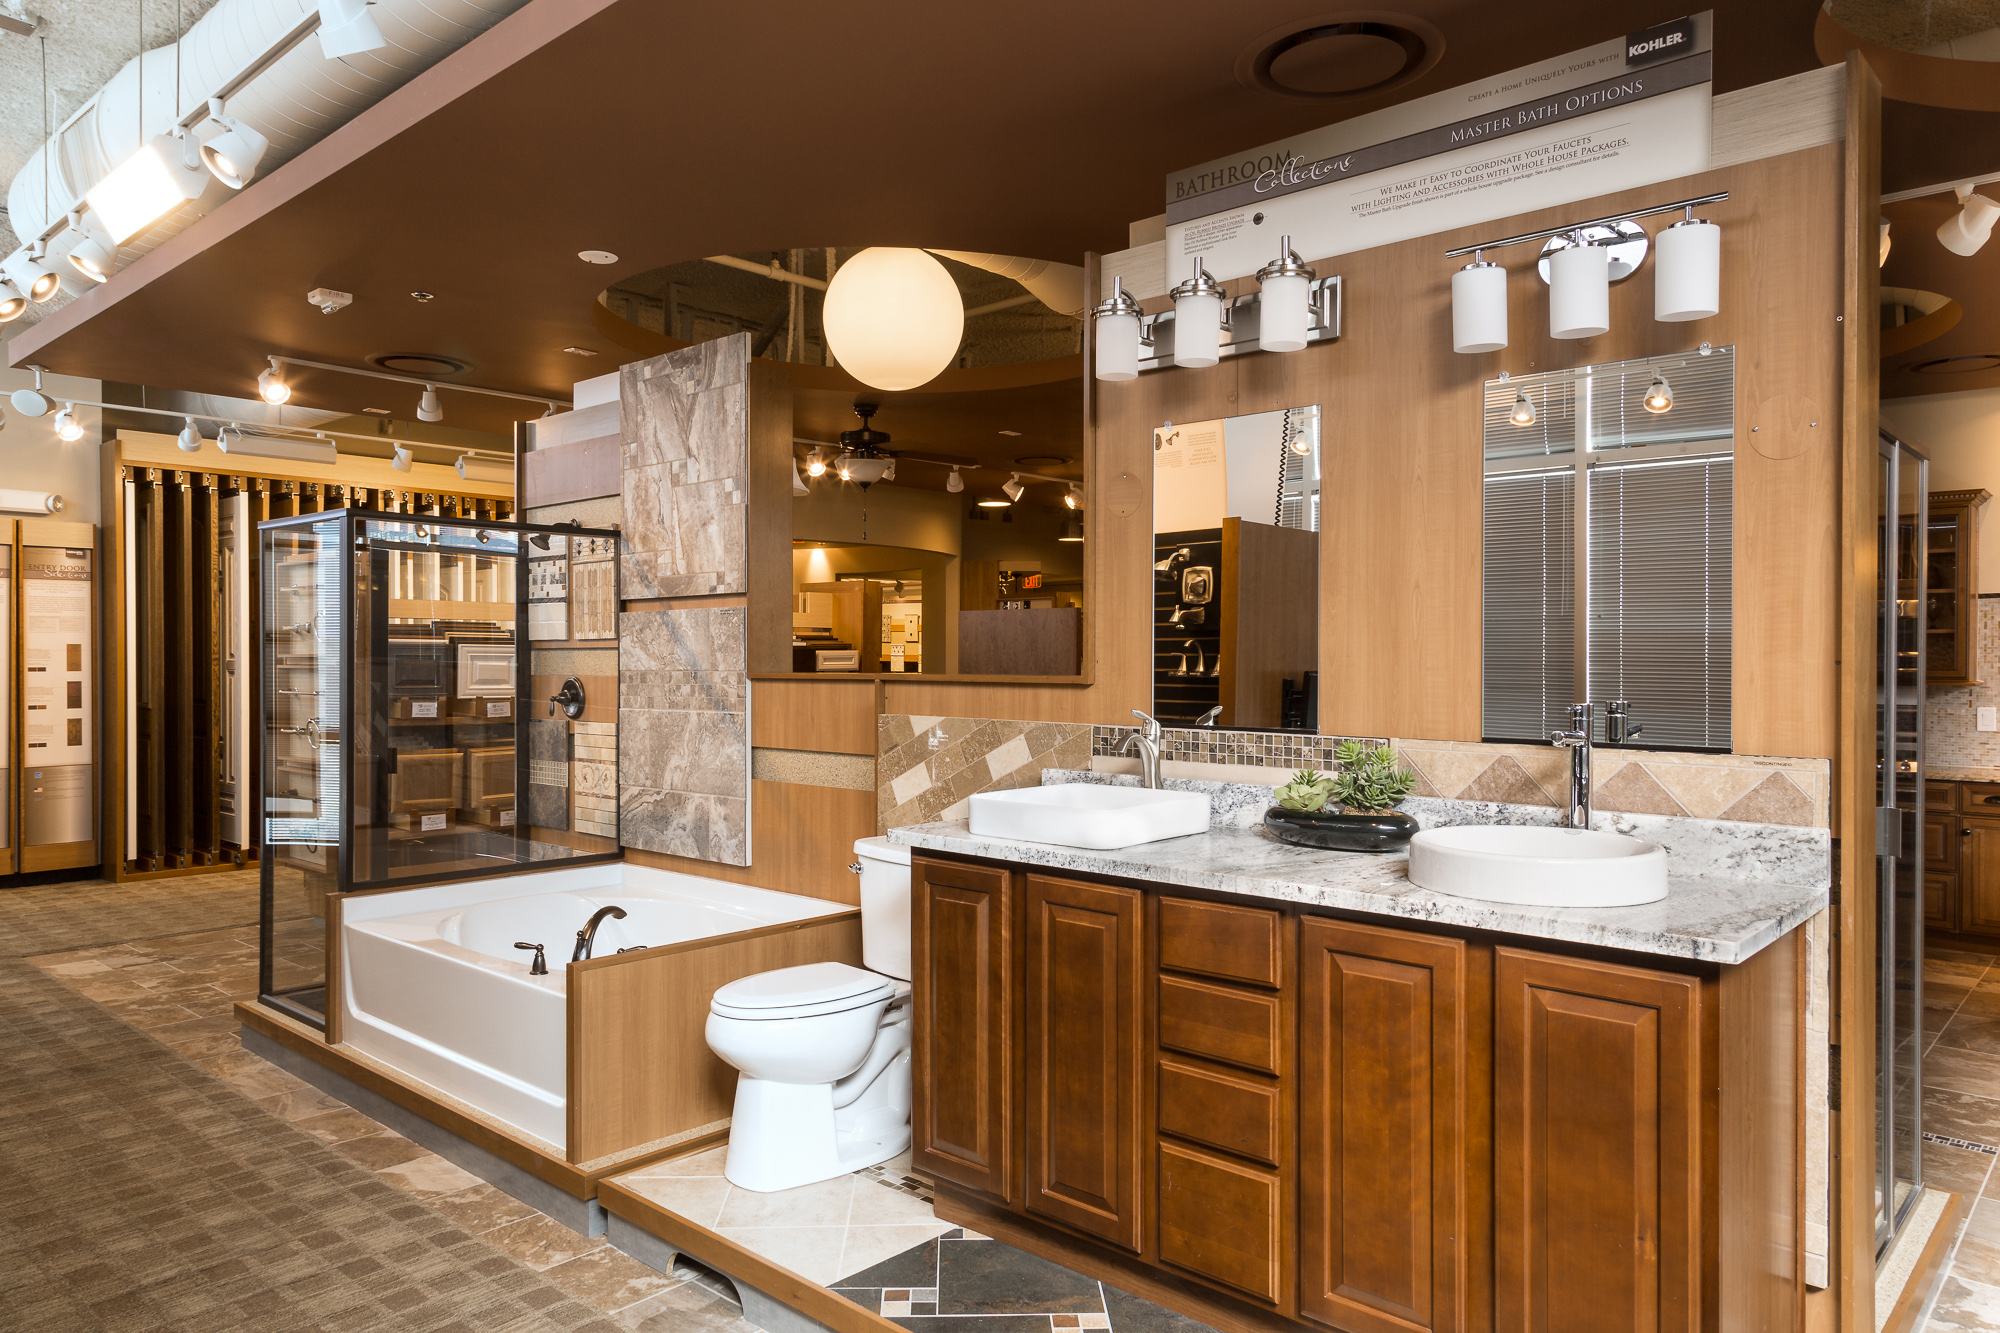 pulte home expressions studio design center, az - interior